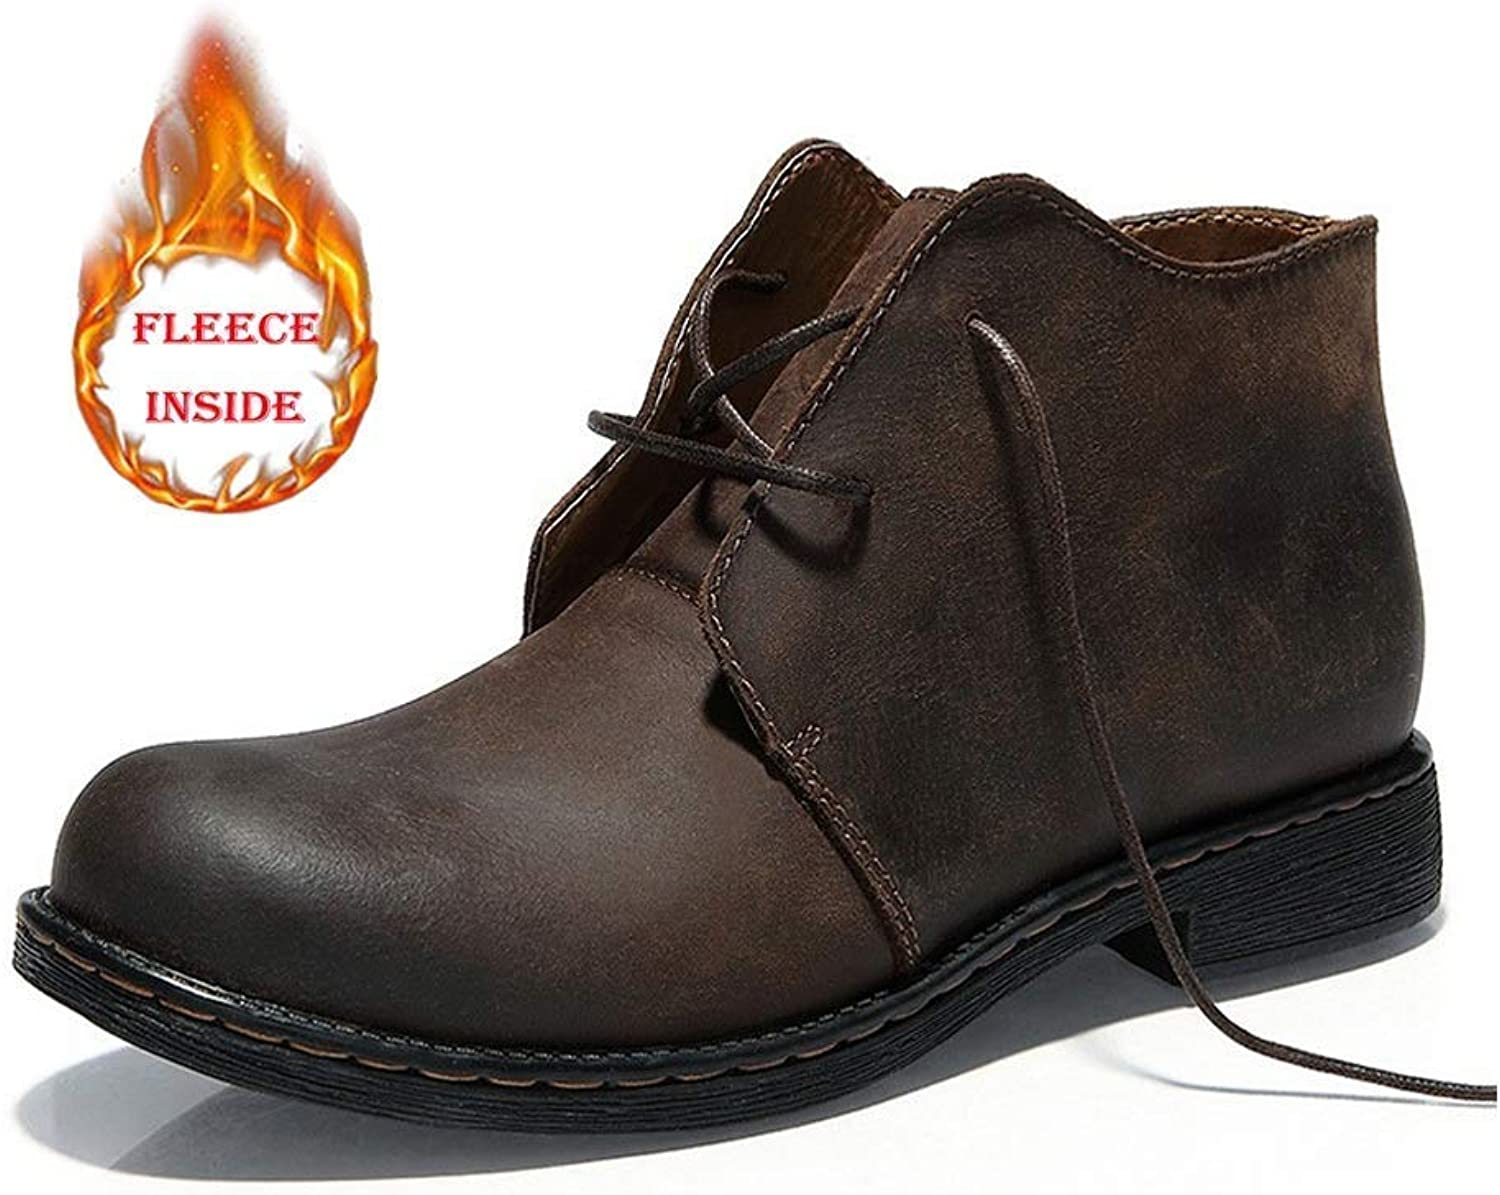 Fuxitoggo Men's Martin Boots, Genuine Leather Lace Up Fleece Lined Work shoes (Normal Option) (color  Warm Black, Size  40 EU) (color   Warm Brown, Size   47 EU)